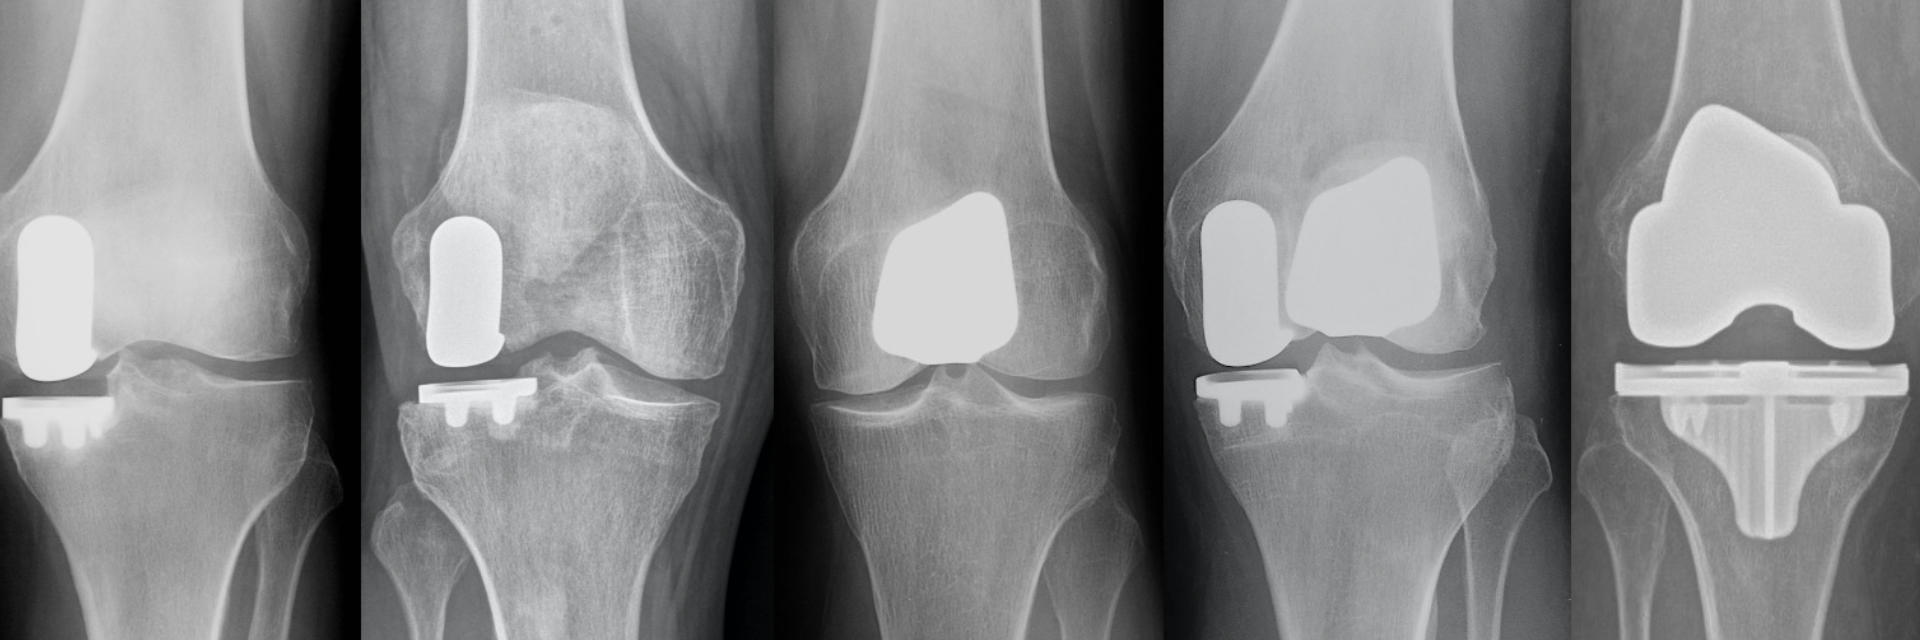 X rays of knee joints after partial and total knee replacements